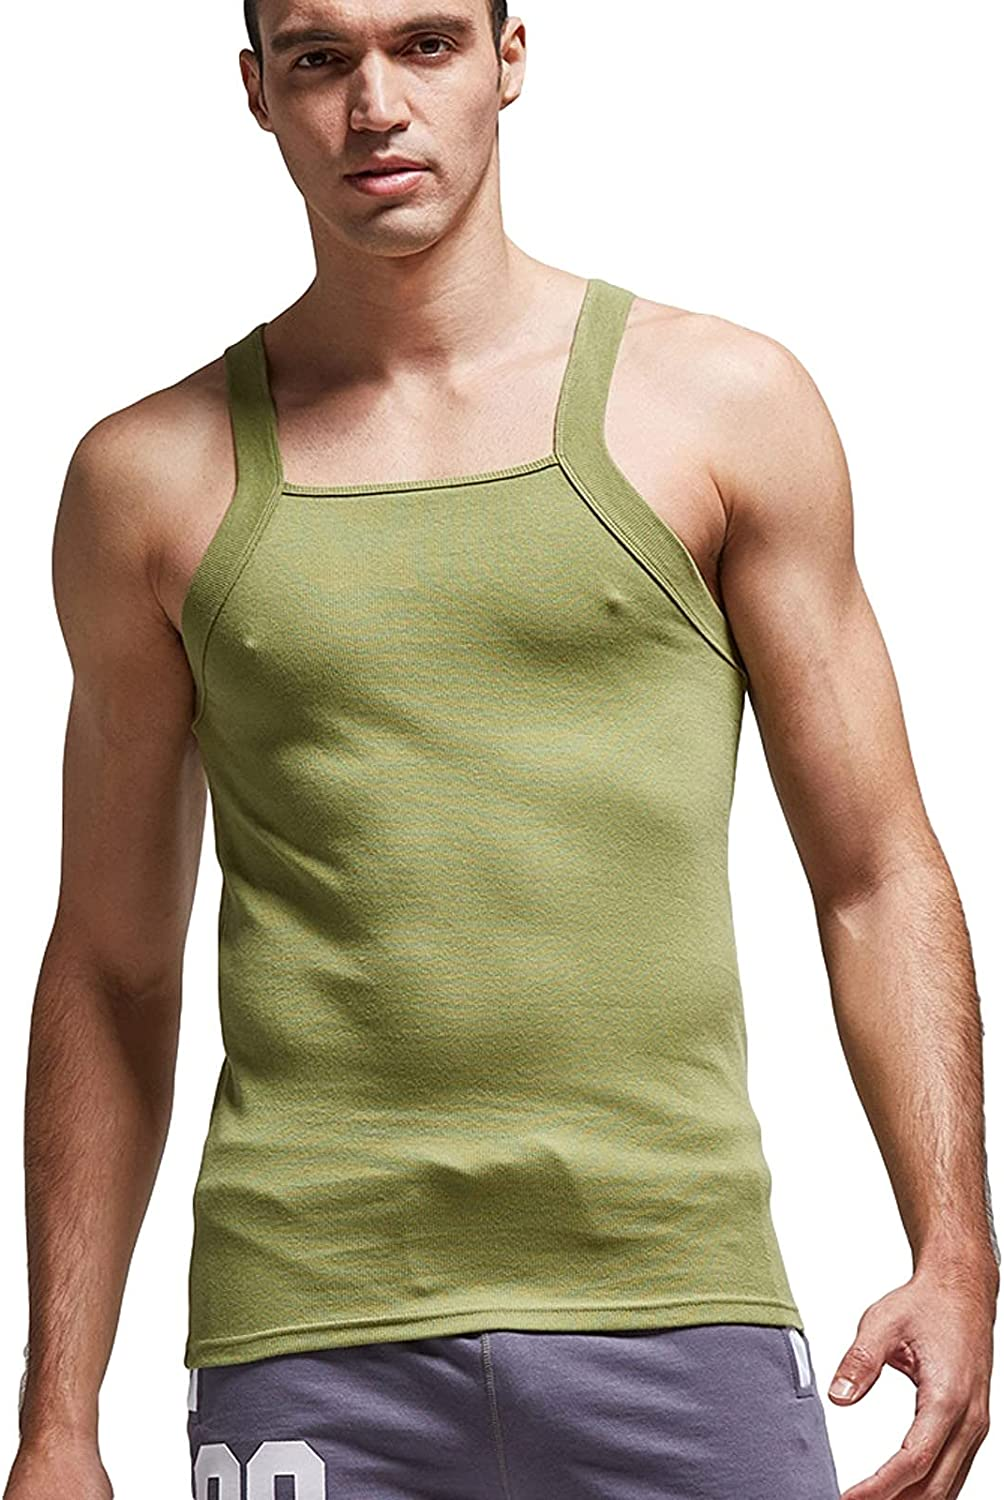 Womens Summer Tops Men's Fitness Tight Solid Color Threaded Sling Sports Vest Single Piece Tops Juniors Girls